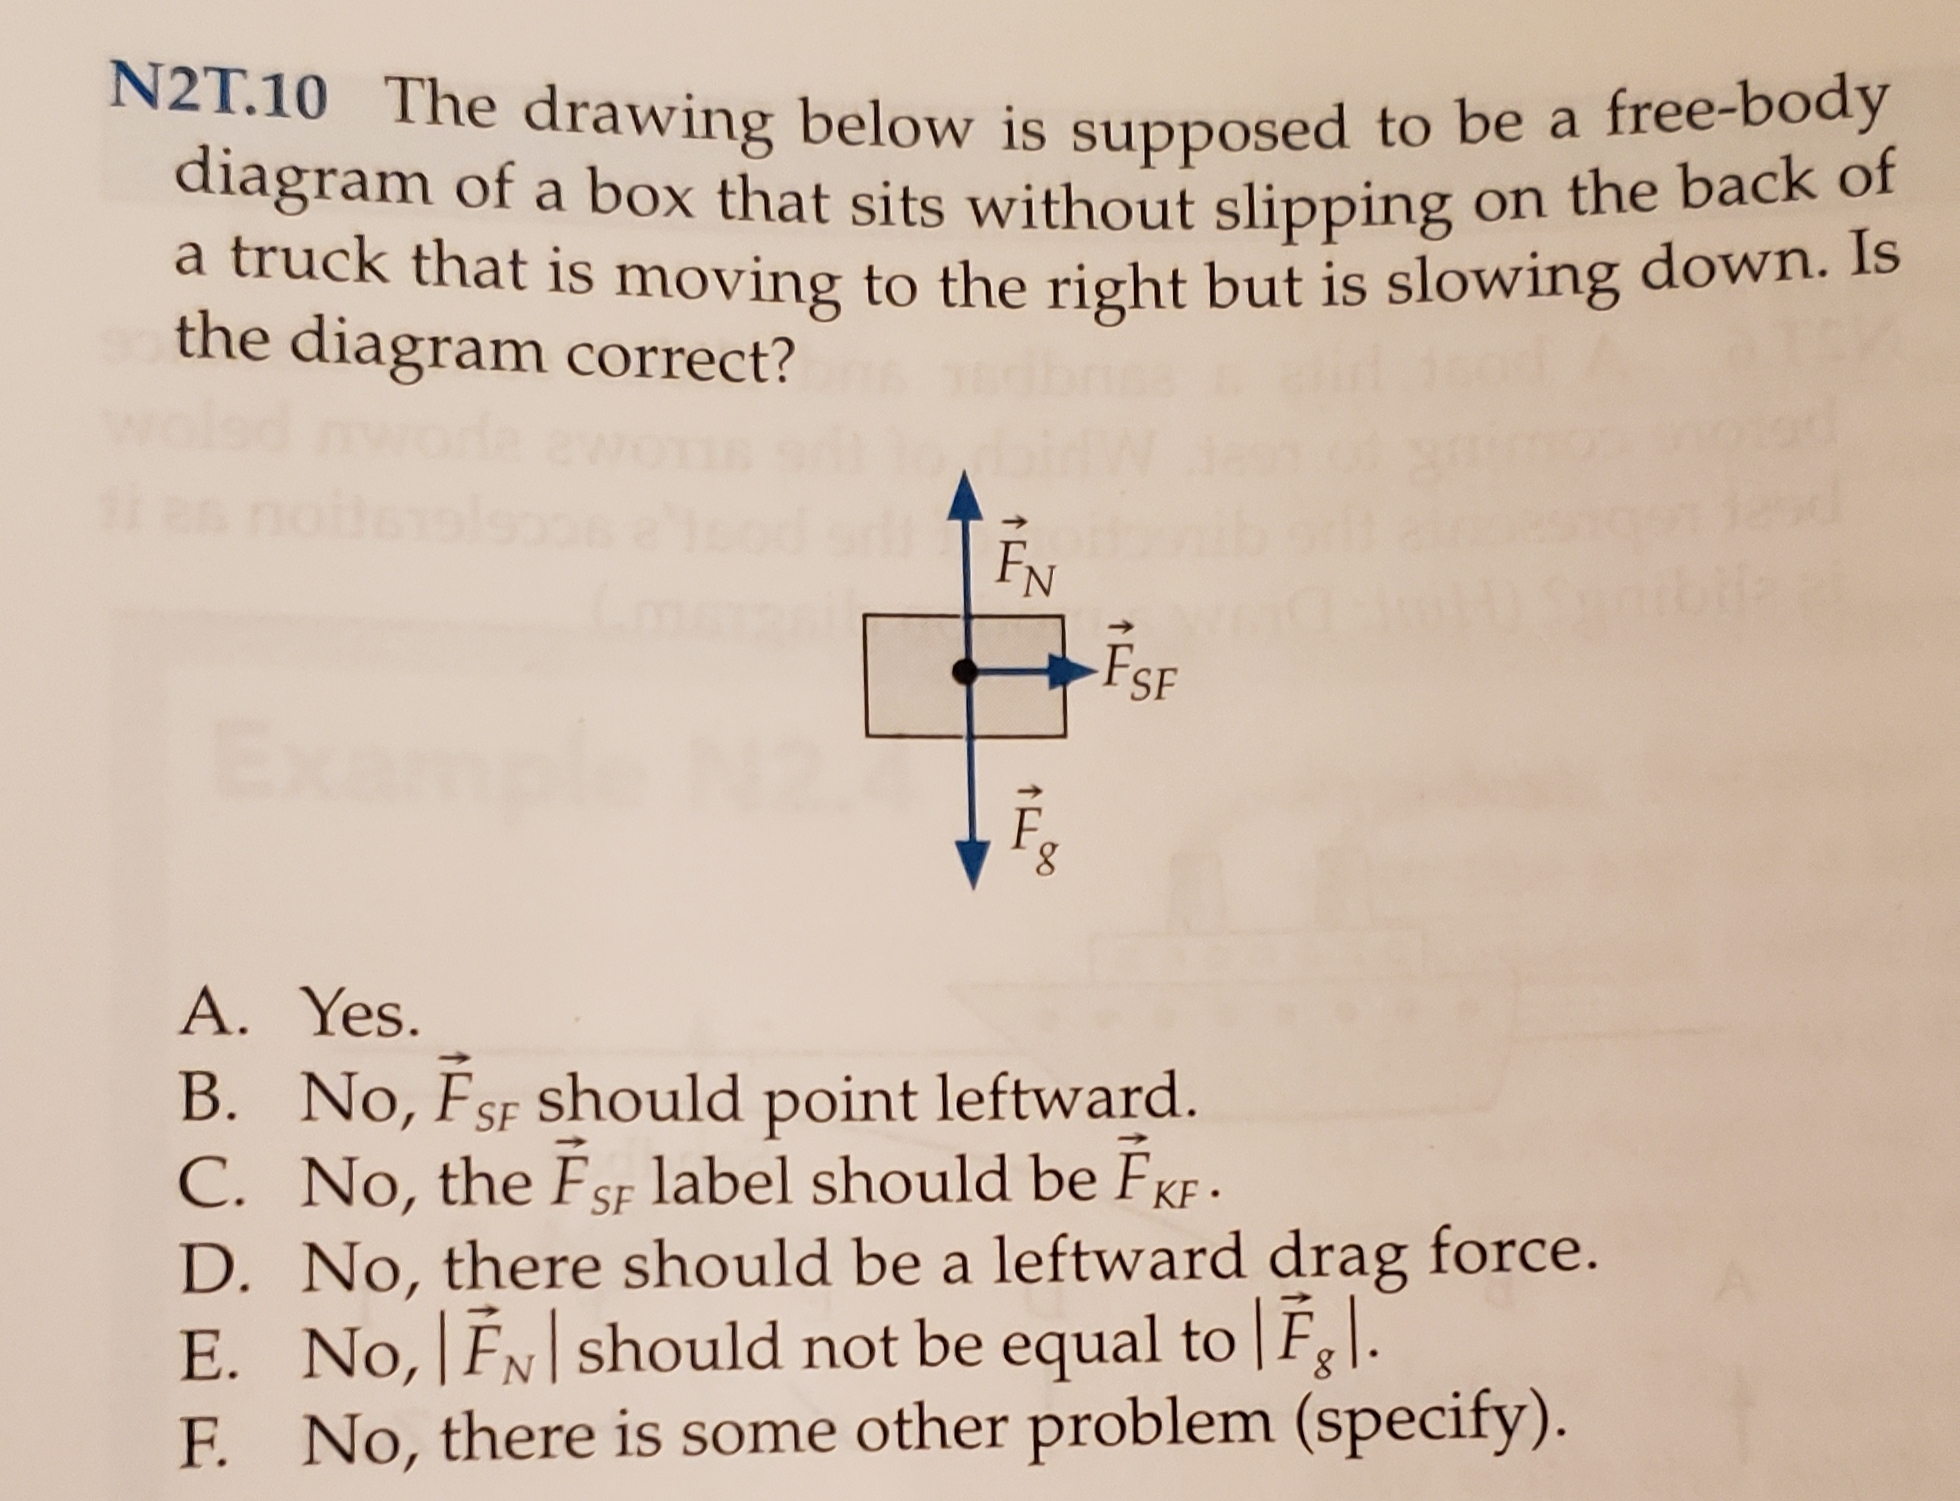 N2T.10 The drawing below is supposed to be a free-body diagram of a box that sits without slipping on the back of a truck that is moving to the right but is slowing down. Is the diagram correct? FN FSF A. Yes B. No, FsF should point leftward. C. No, the FSF label should be FKF D. No, there should be a leftward drag force. E. No, FN should not be equal to Fgl. F. No, there is some other problem (specify).